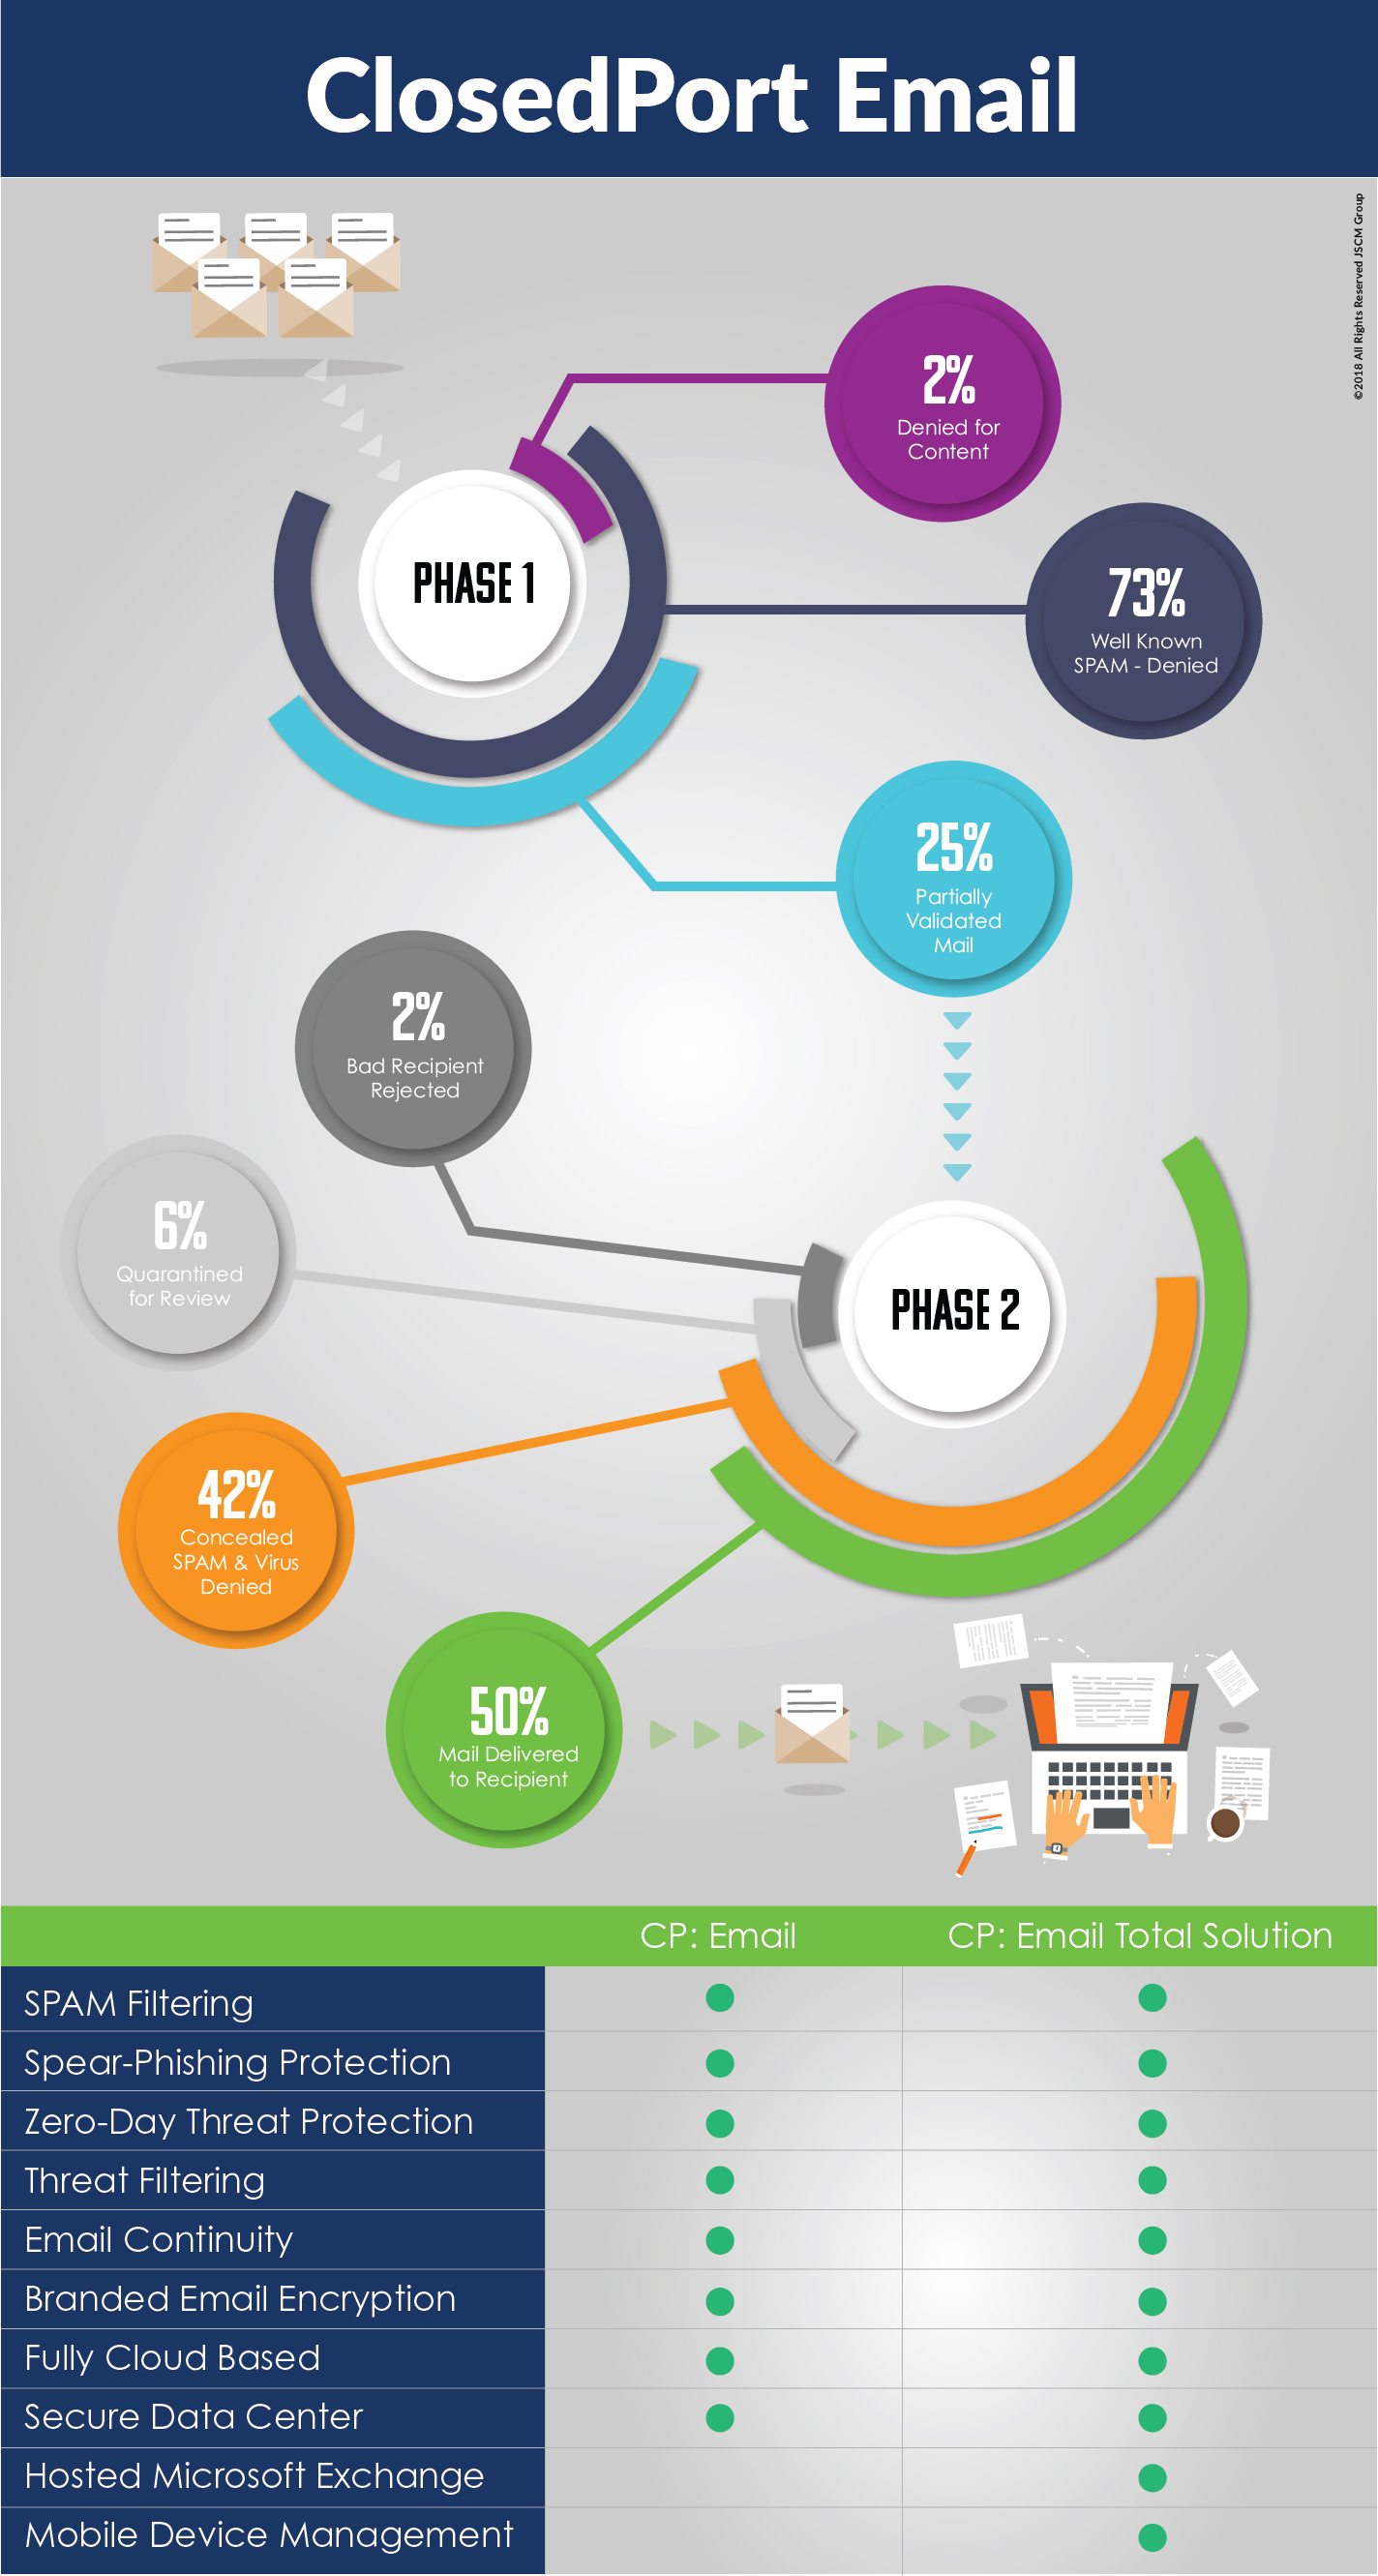 ClosedPort Email 2 Filter process infographic